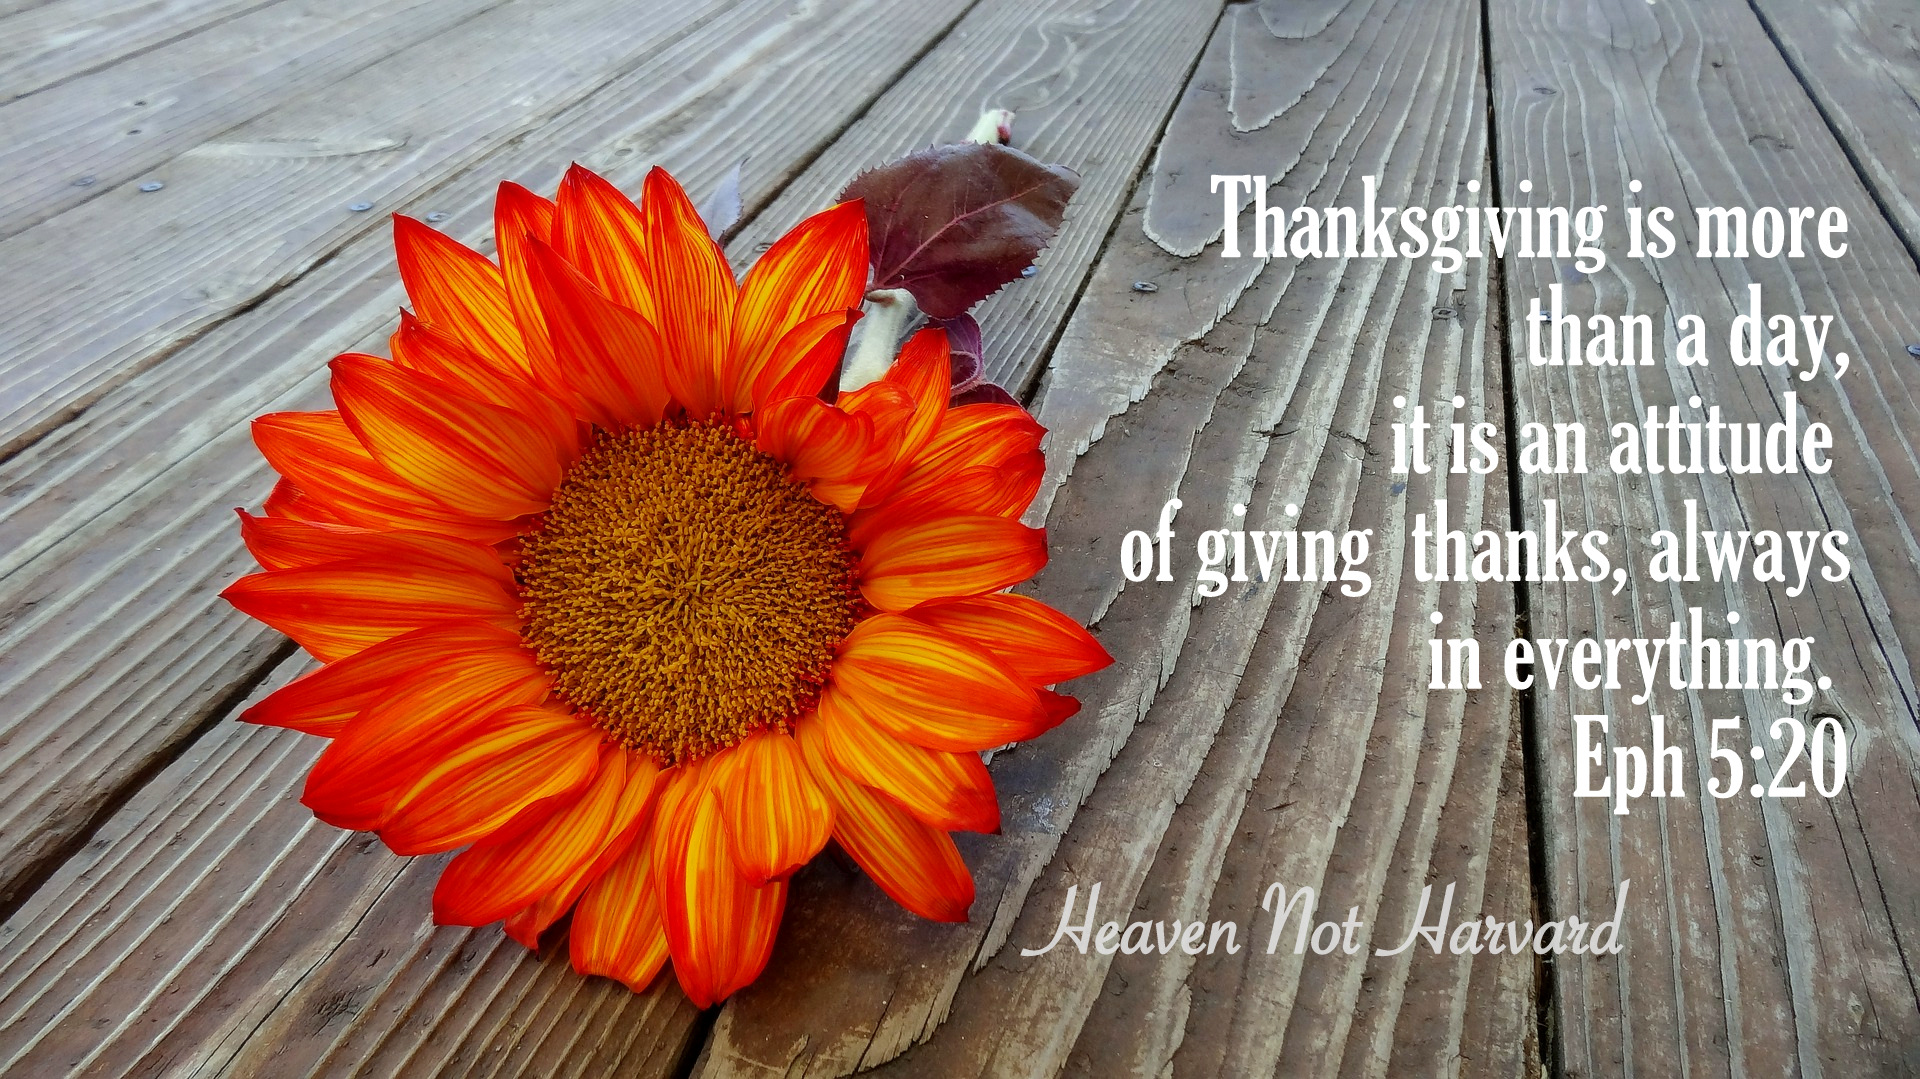 Thanksgiving is more than a day, it is an attitude of giving thanks, always in everything. Eph.5:20